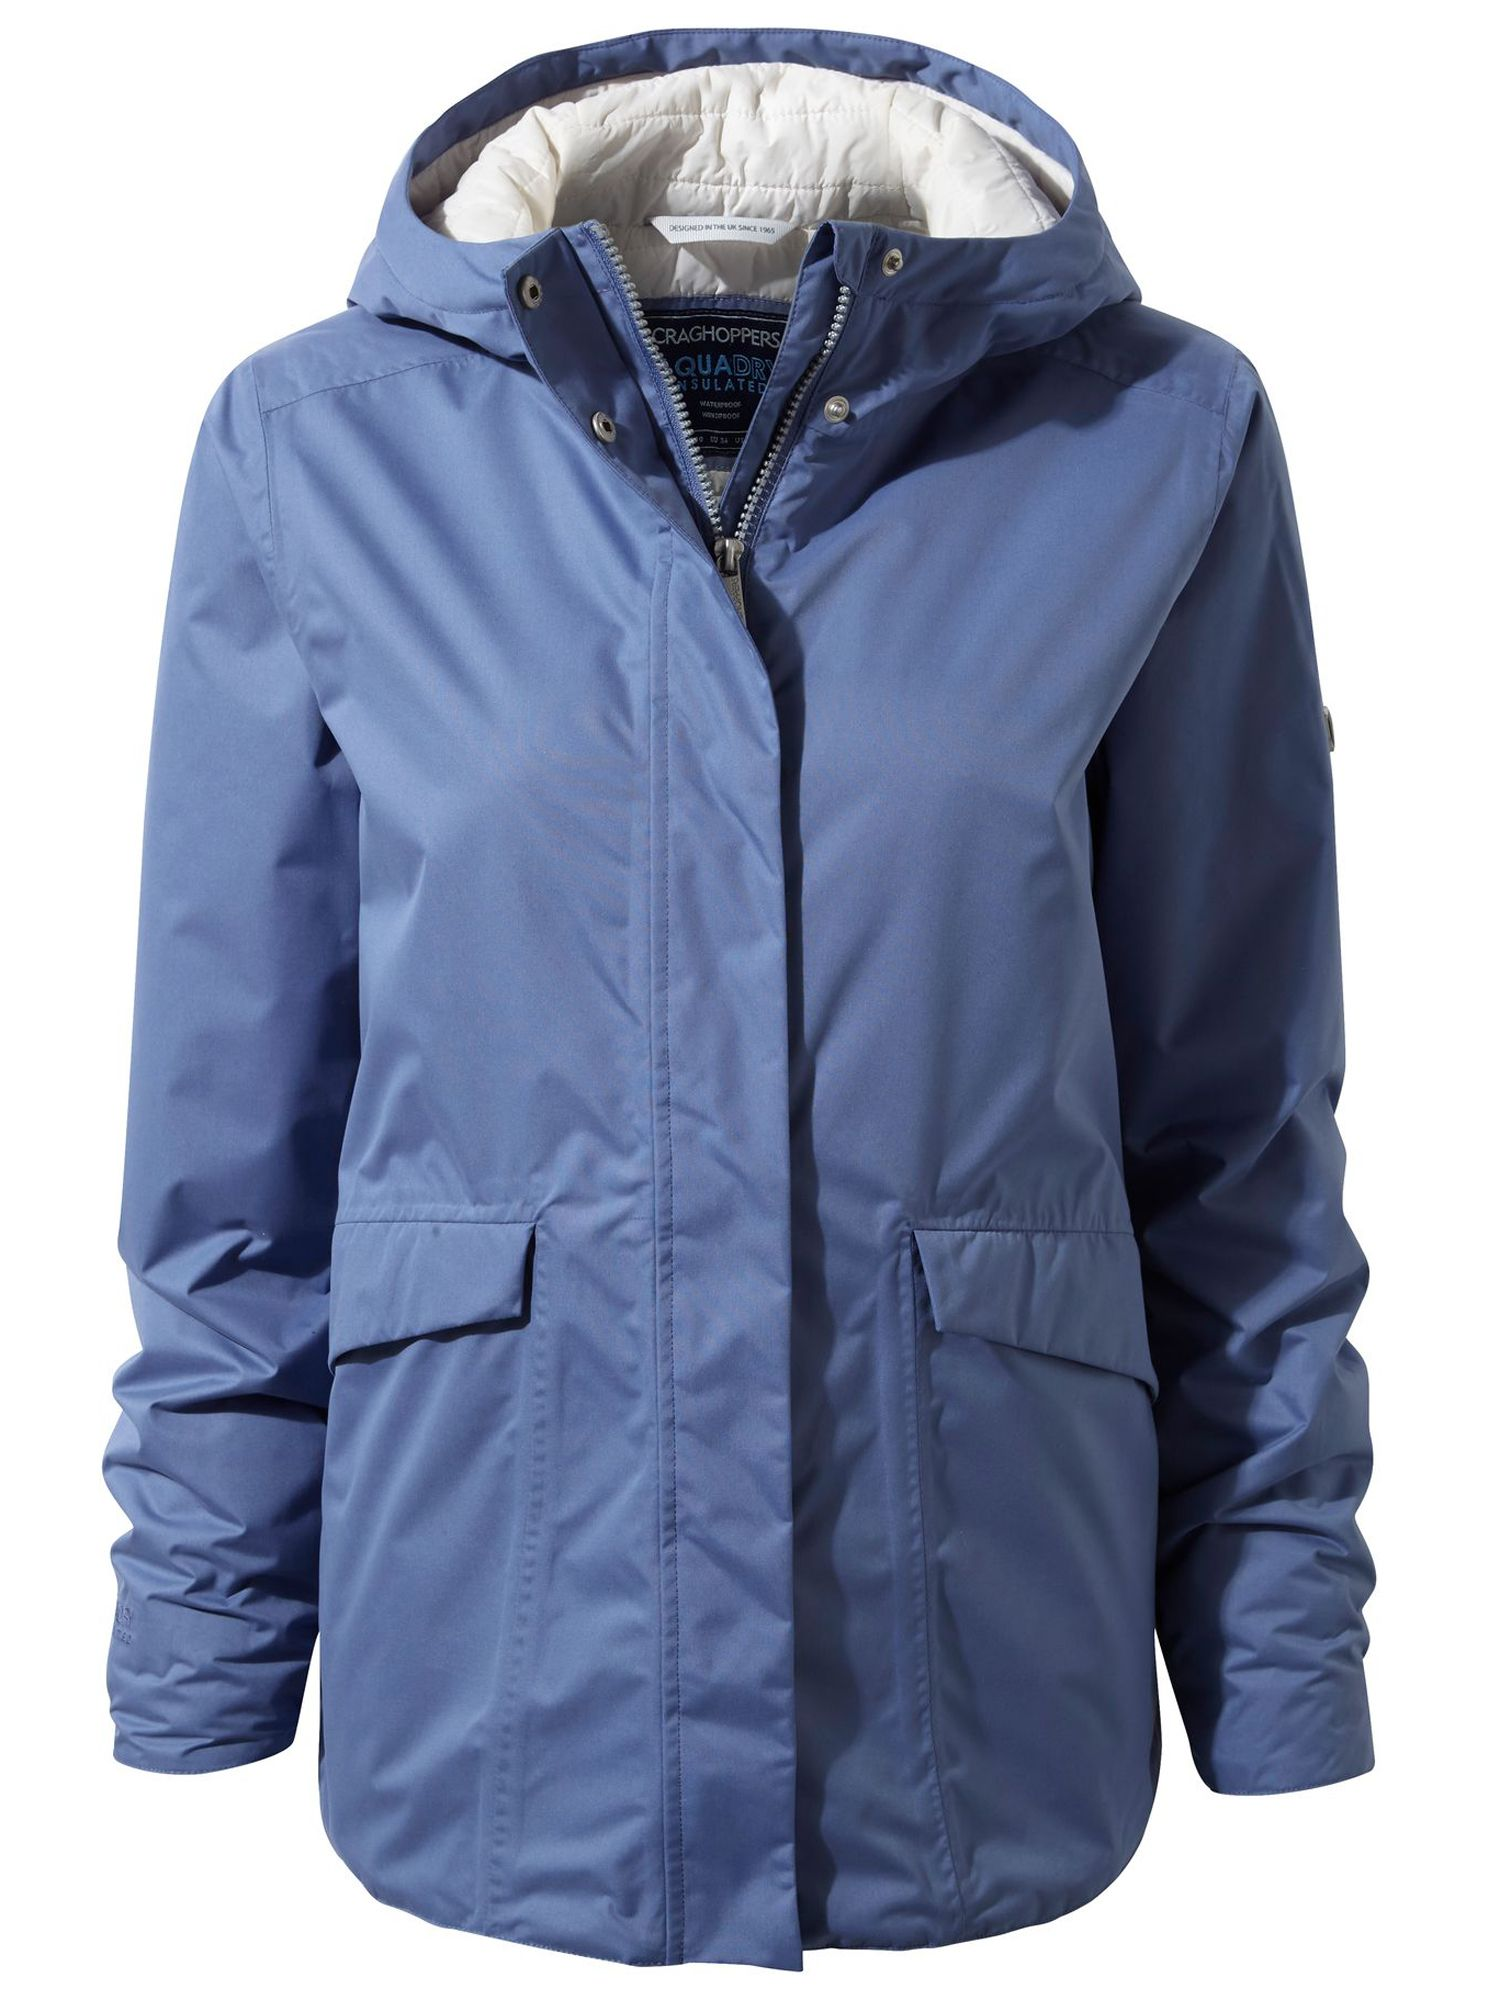 Craghoppers Marla Jacket, Blue